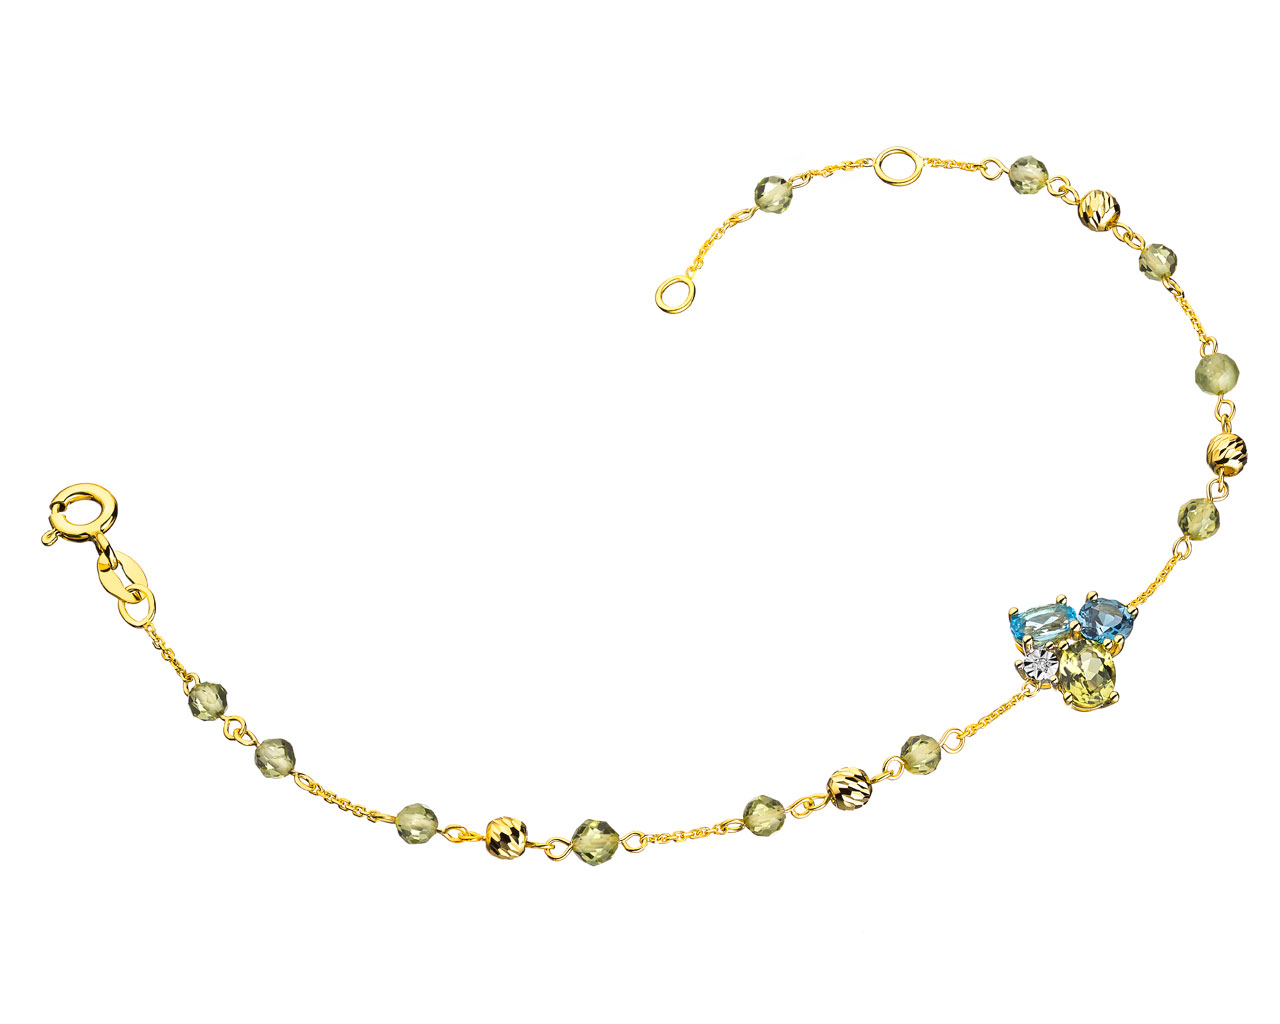 9 K Rhodium-Plated Yellow Gold Bracelet with Diamond